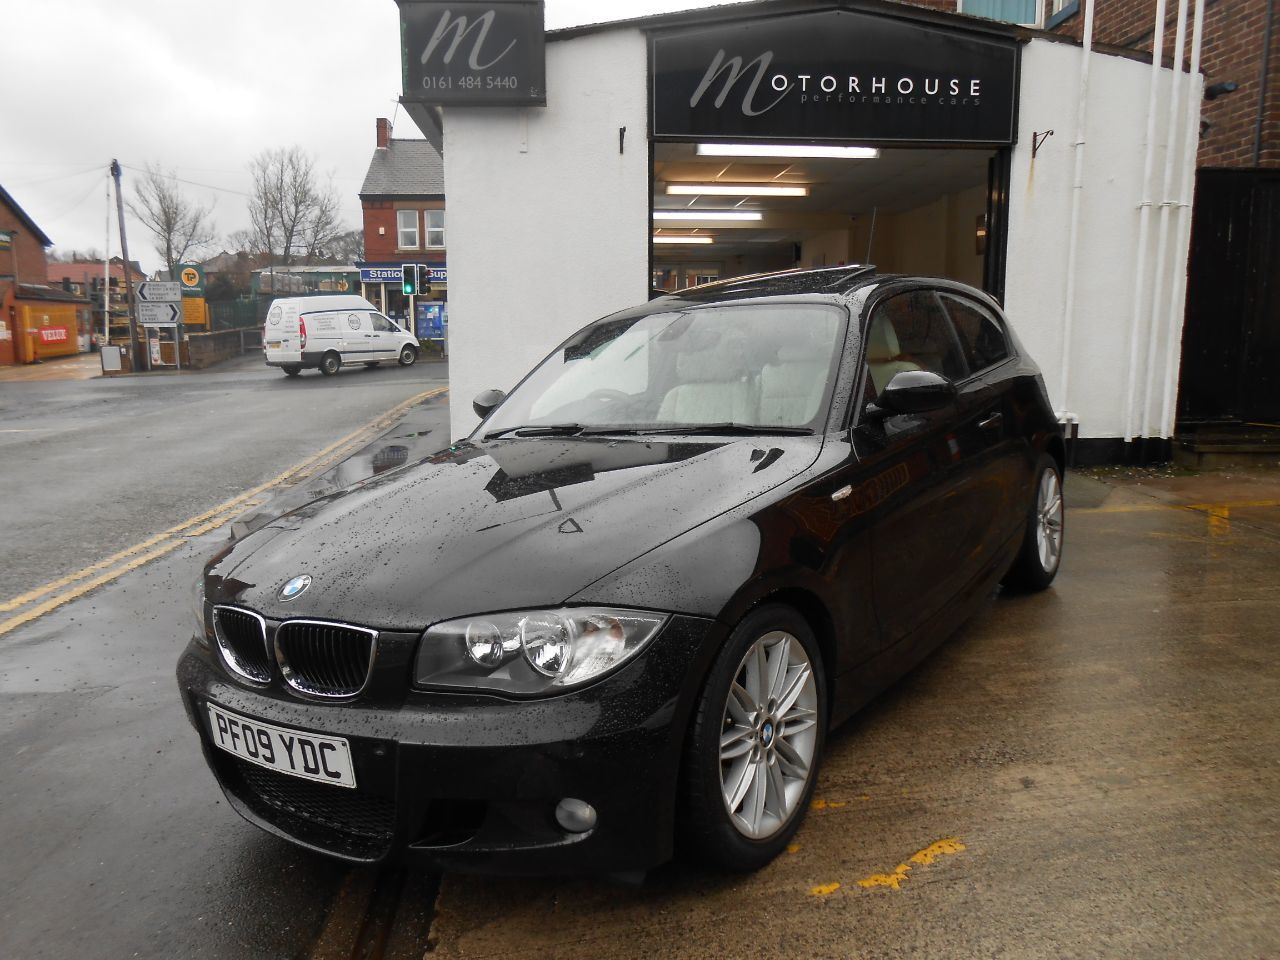 Motorhouse Performance Cars Used Cars In Stockport Autoweb